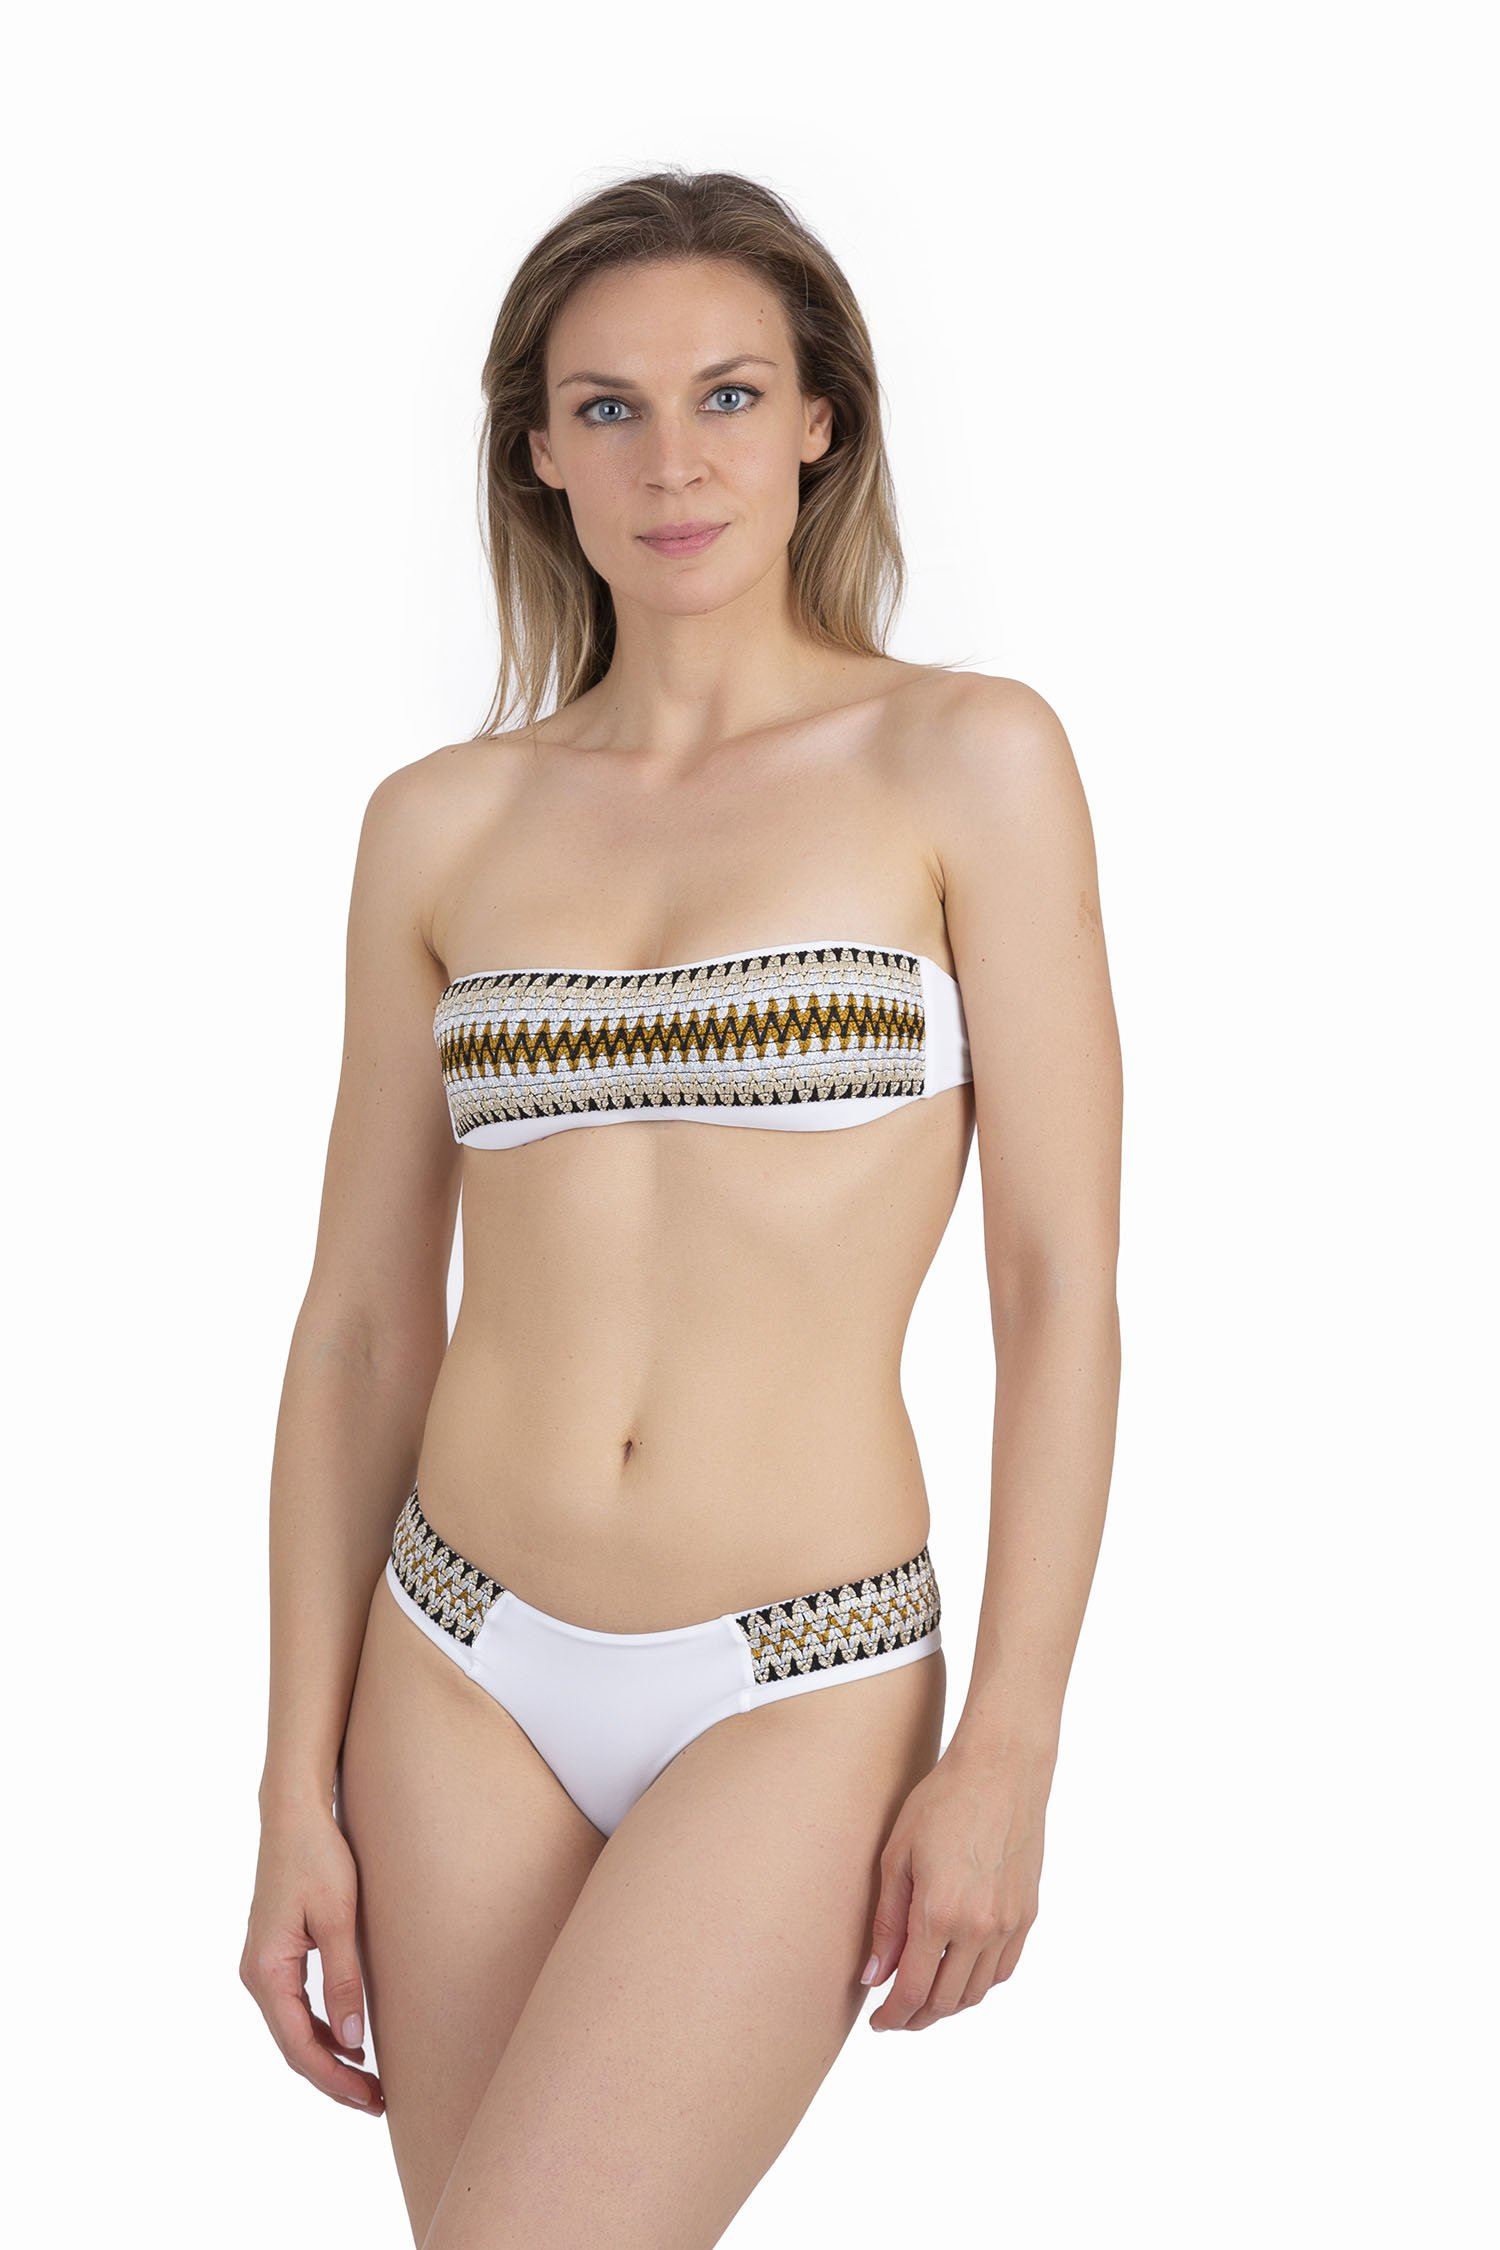 BANDEAU BIKINI WITH LUREX ELASTICS AND CULOTTE BOTTOM - Bianco White 001